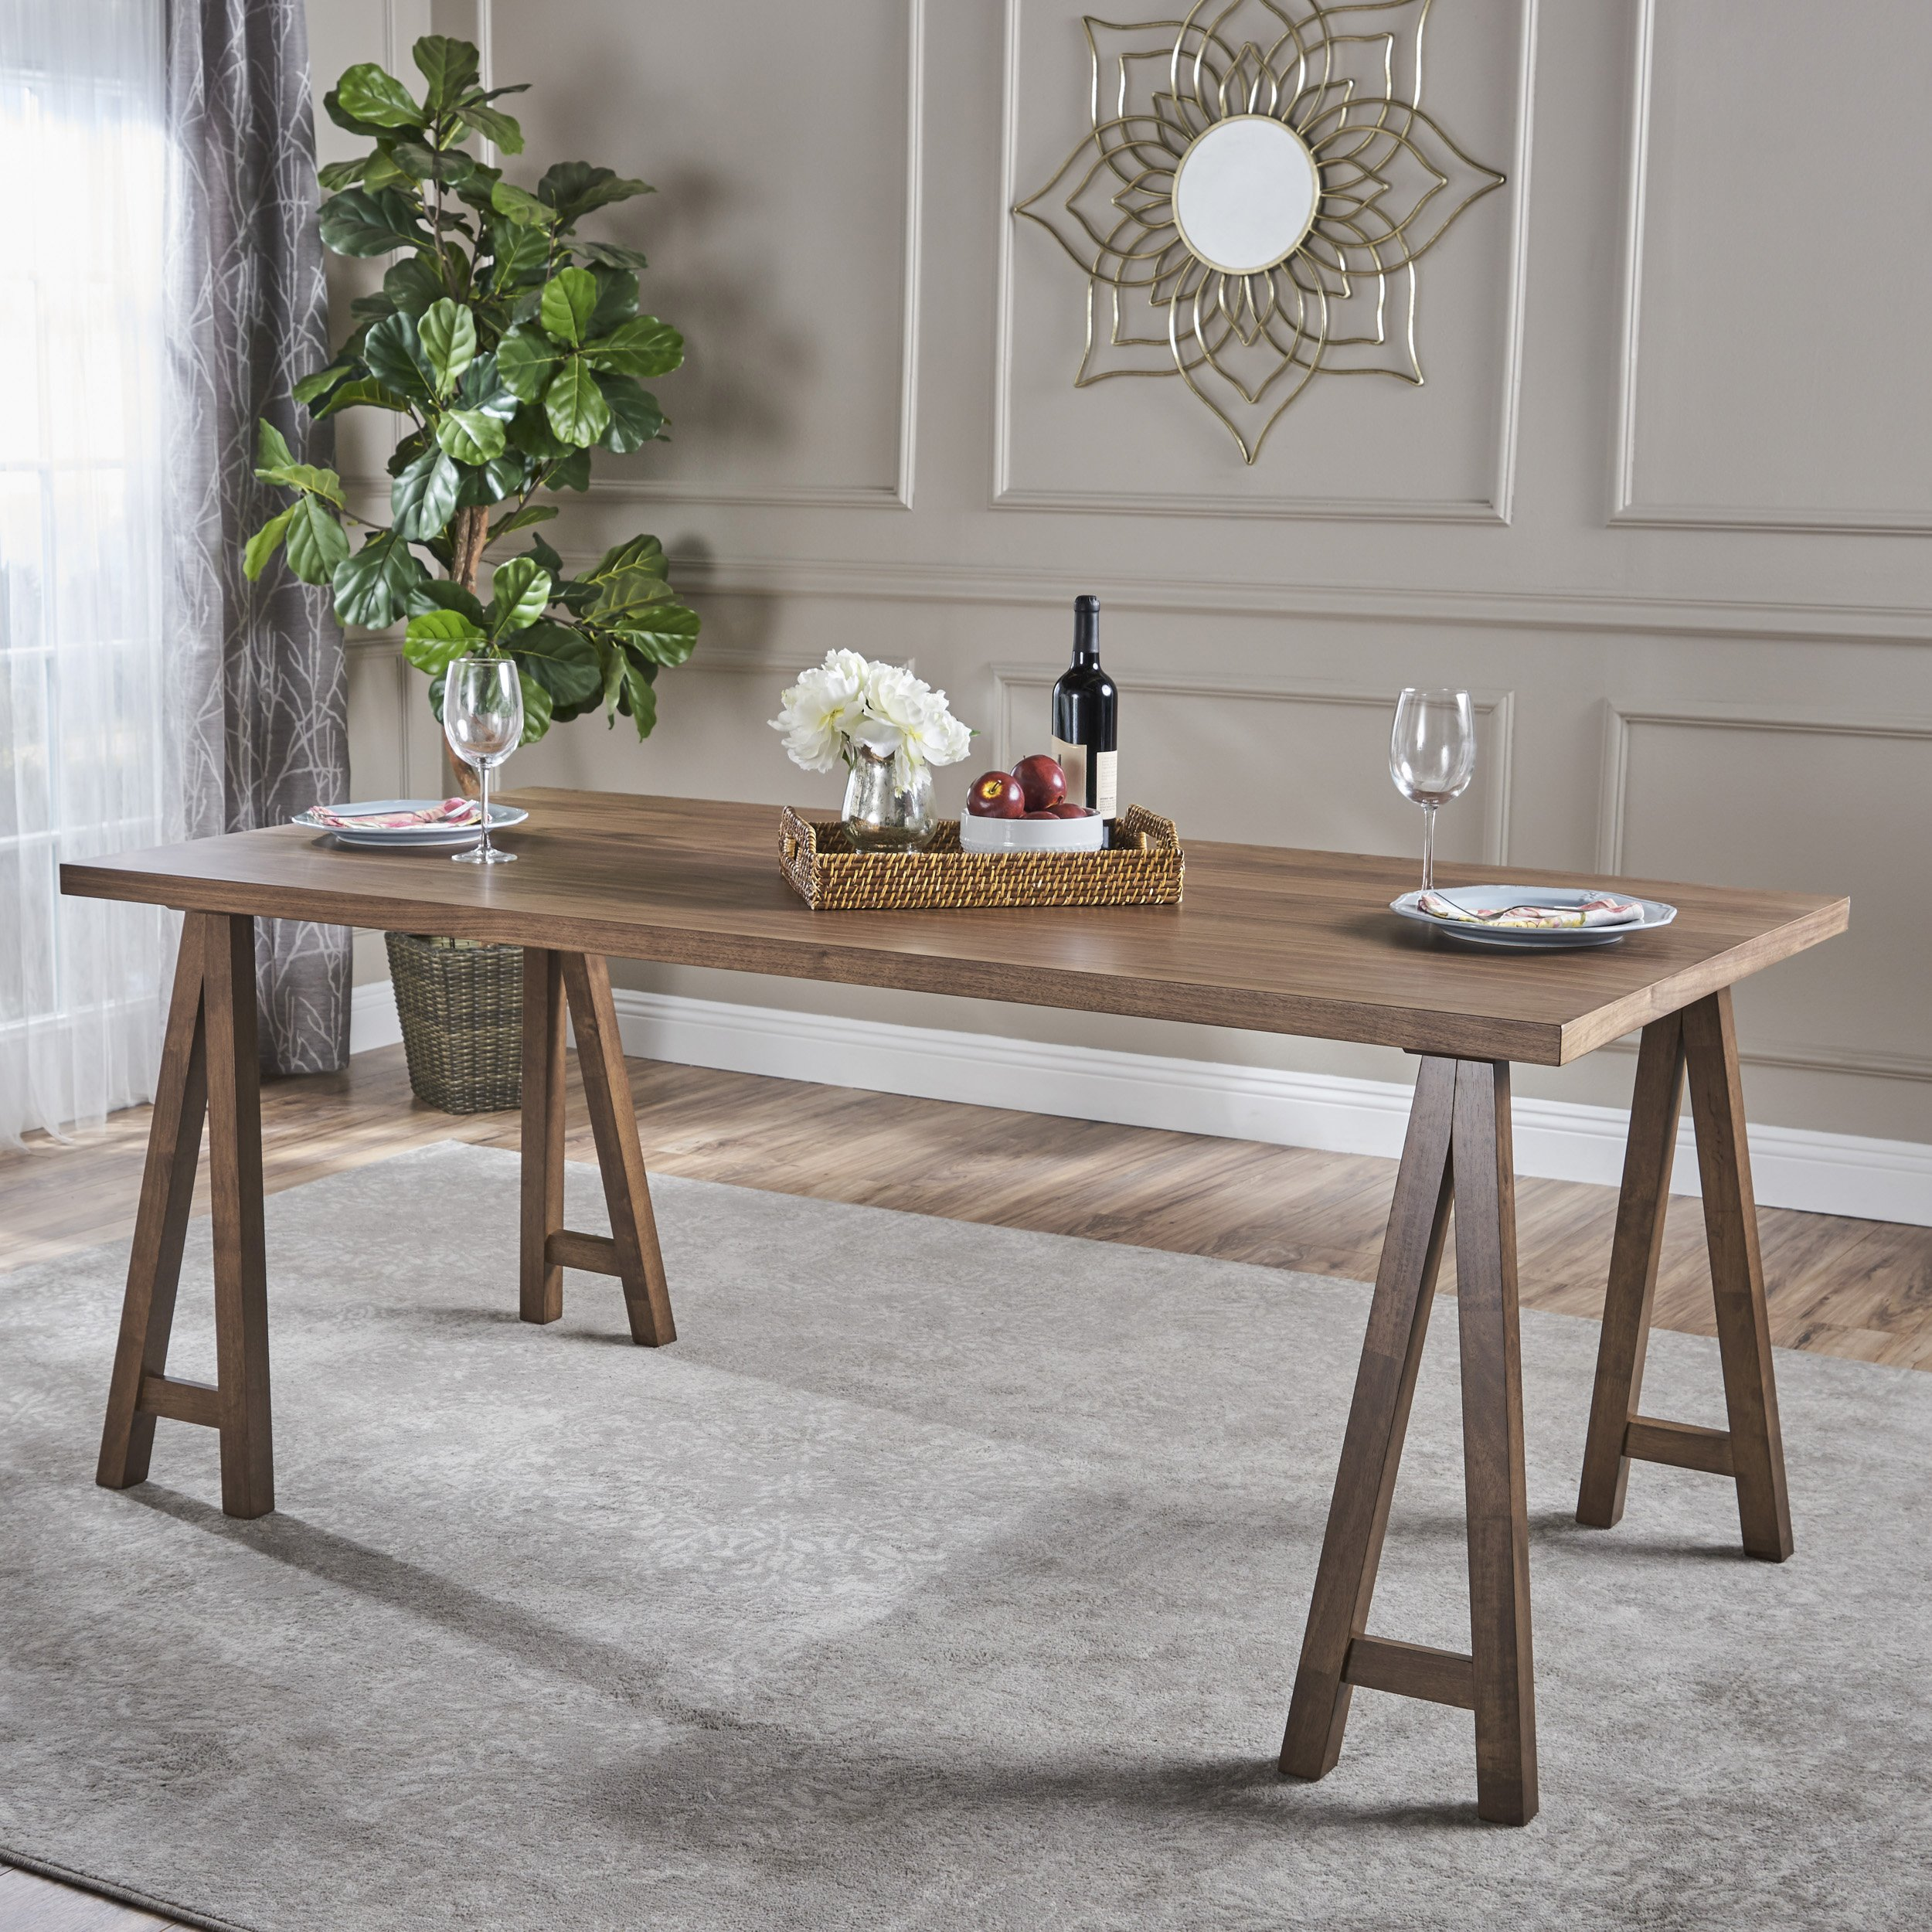 Versatile Kitchen Table And Chair Sets For Your Home: Sabrina Farmhouse Wood Finish Dining Table (Natural Walnut